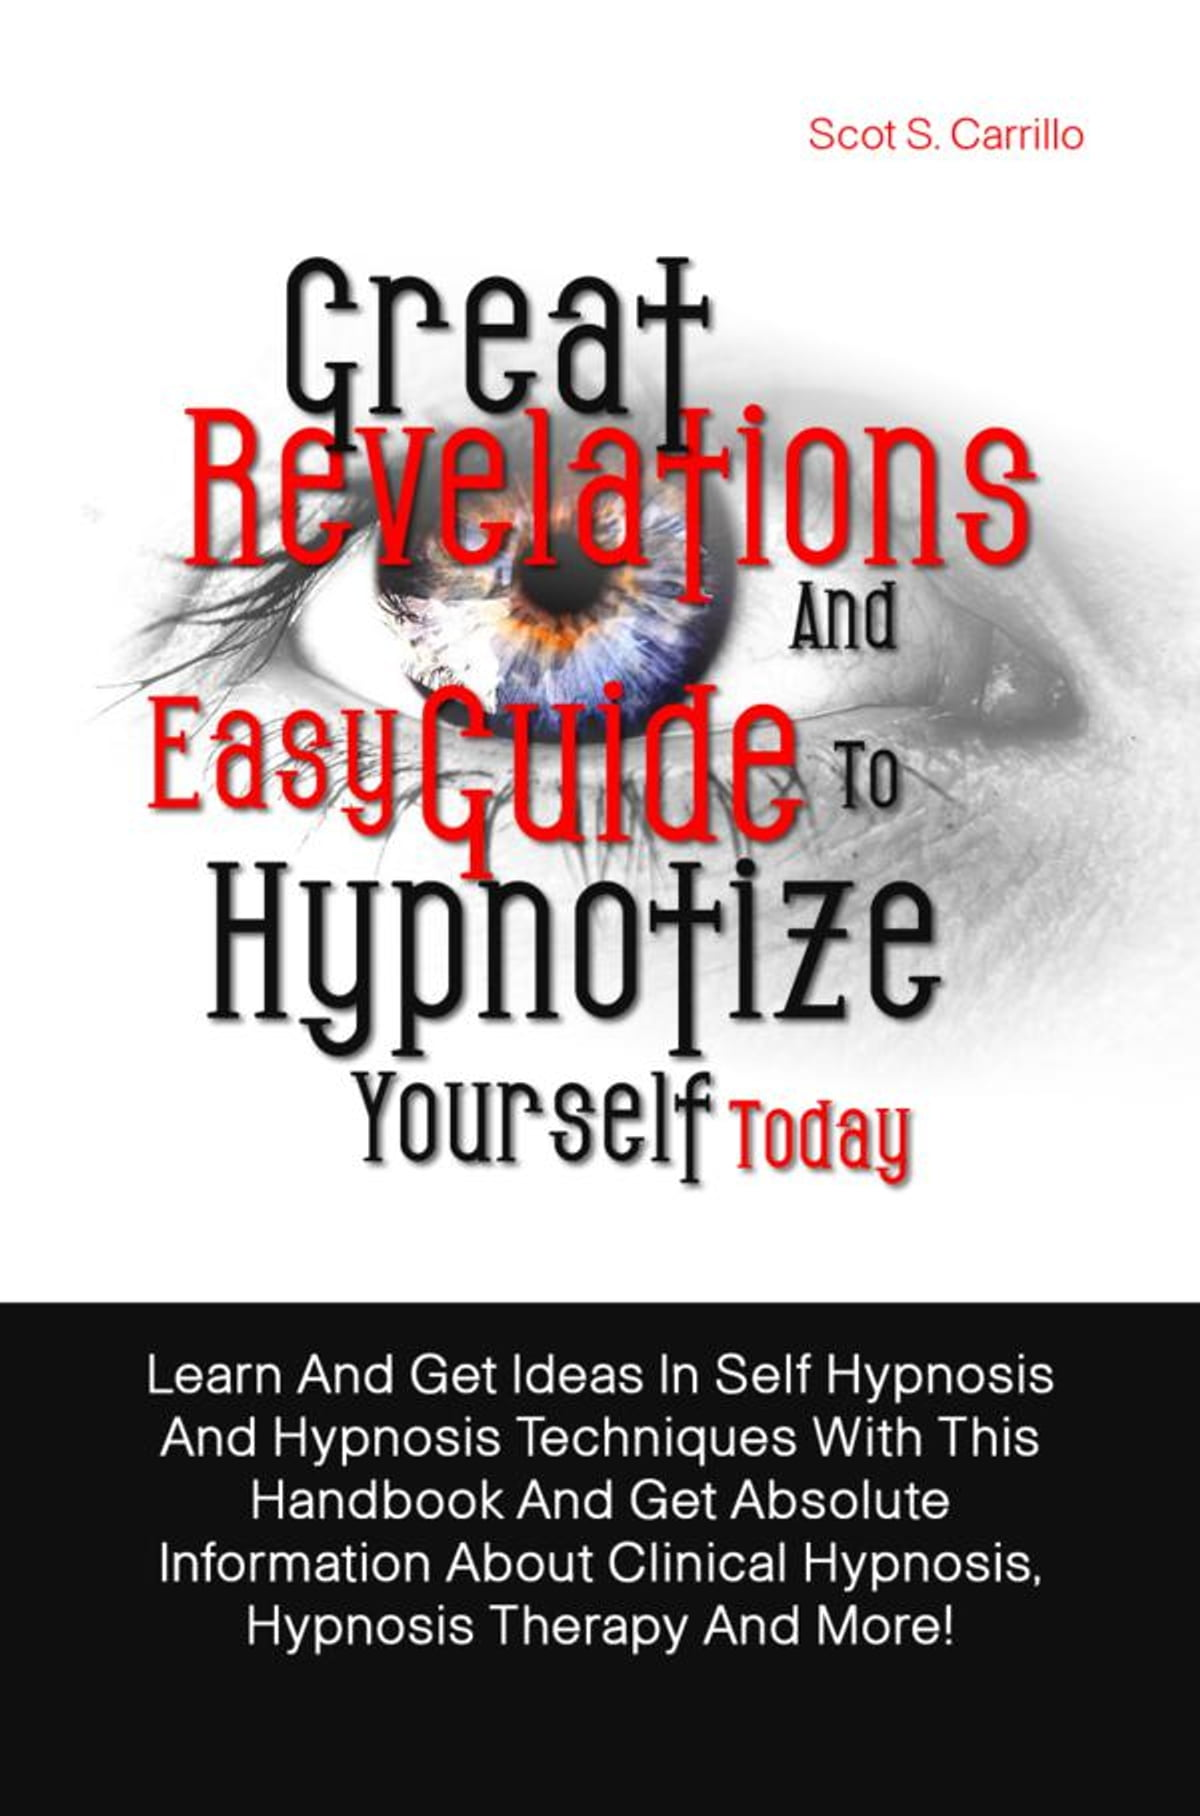 How to quickly learn hypnosis yourself 51